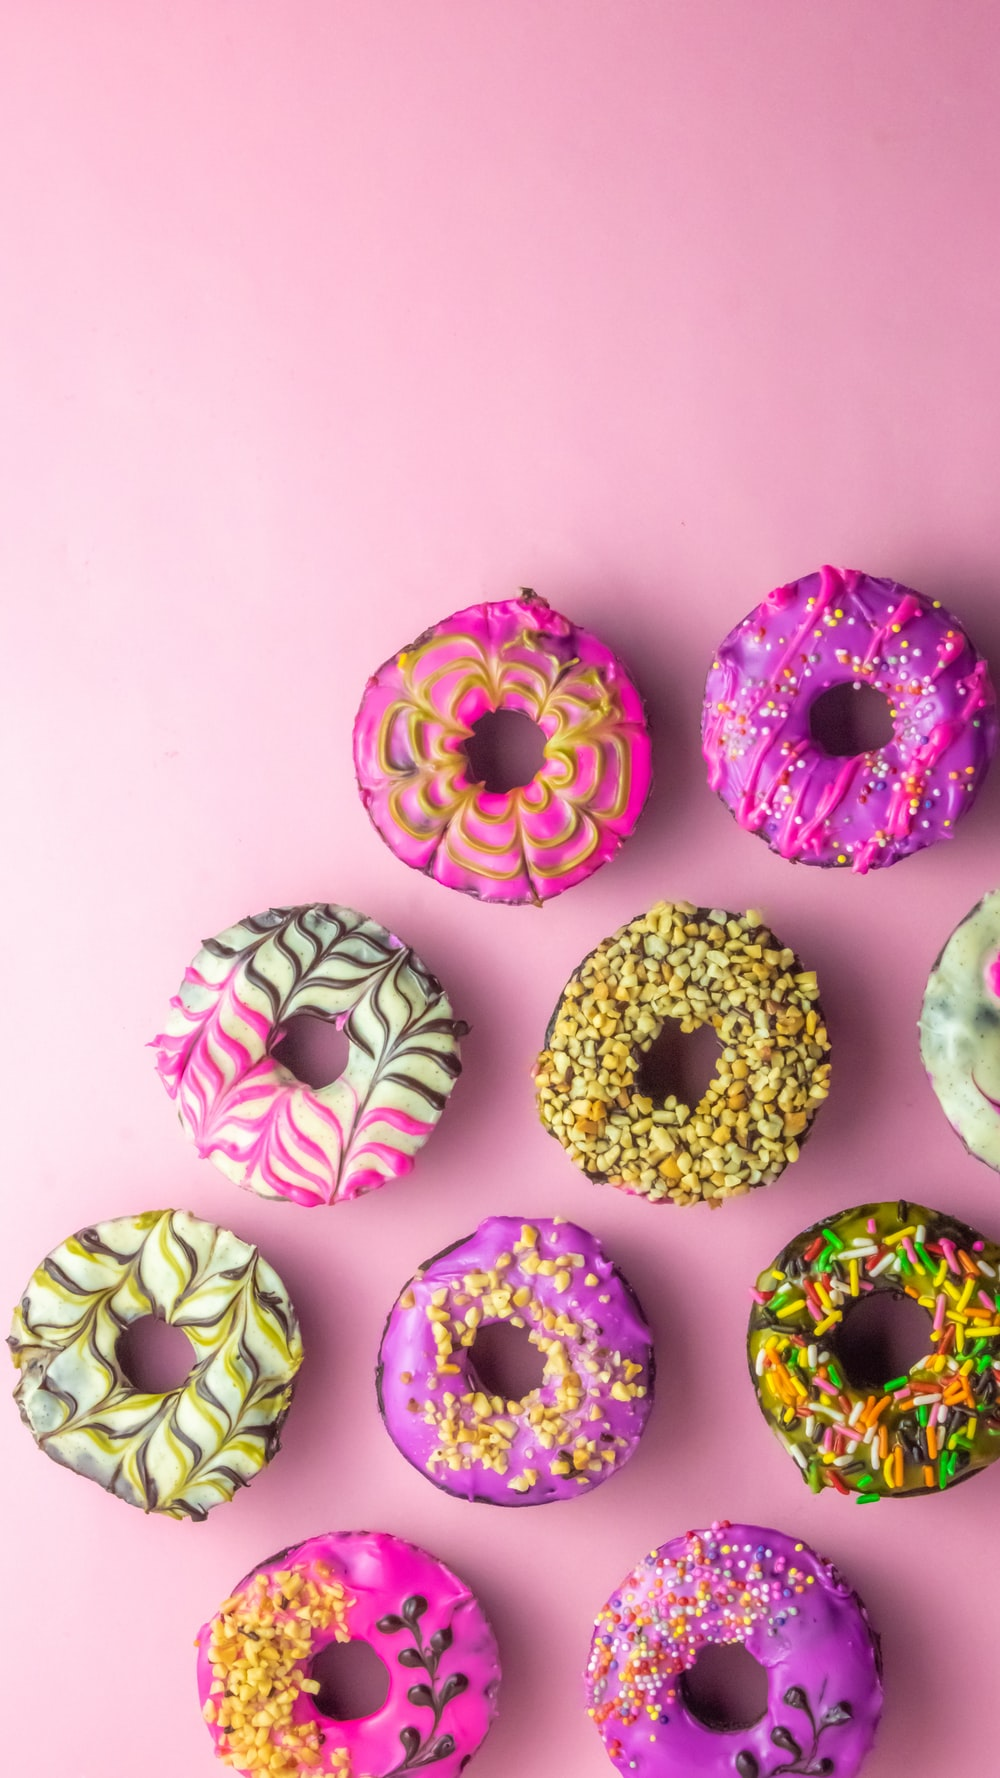 pink and green doughnut on white surface